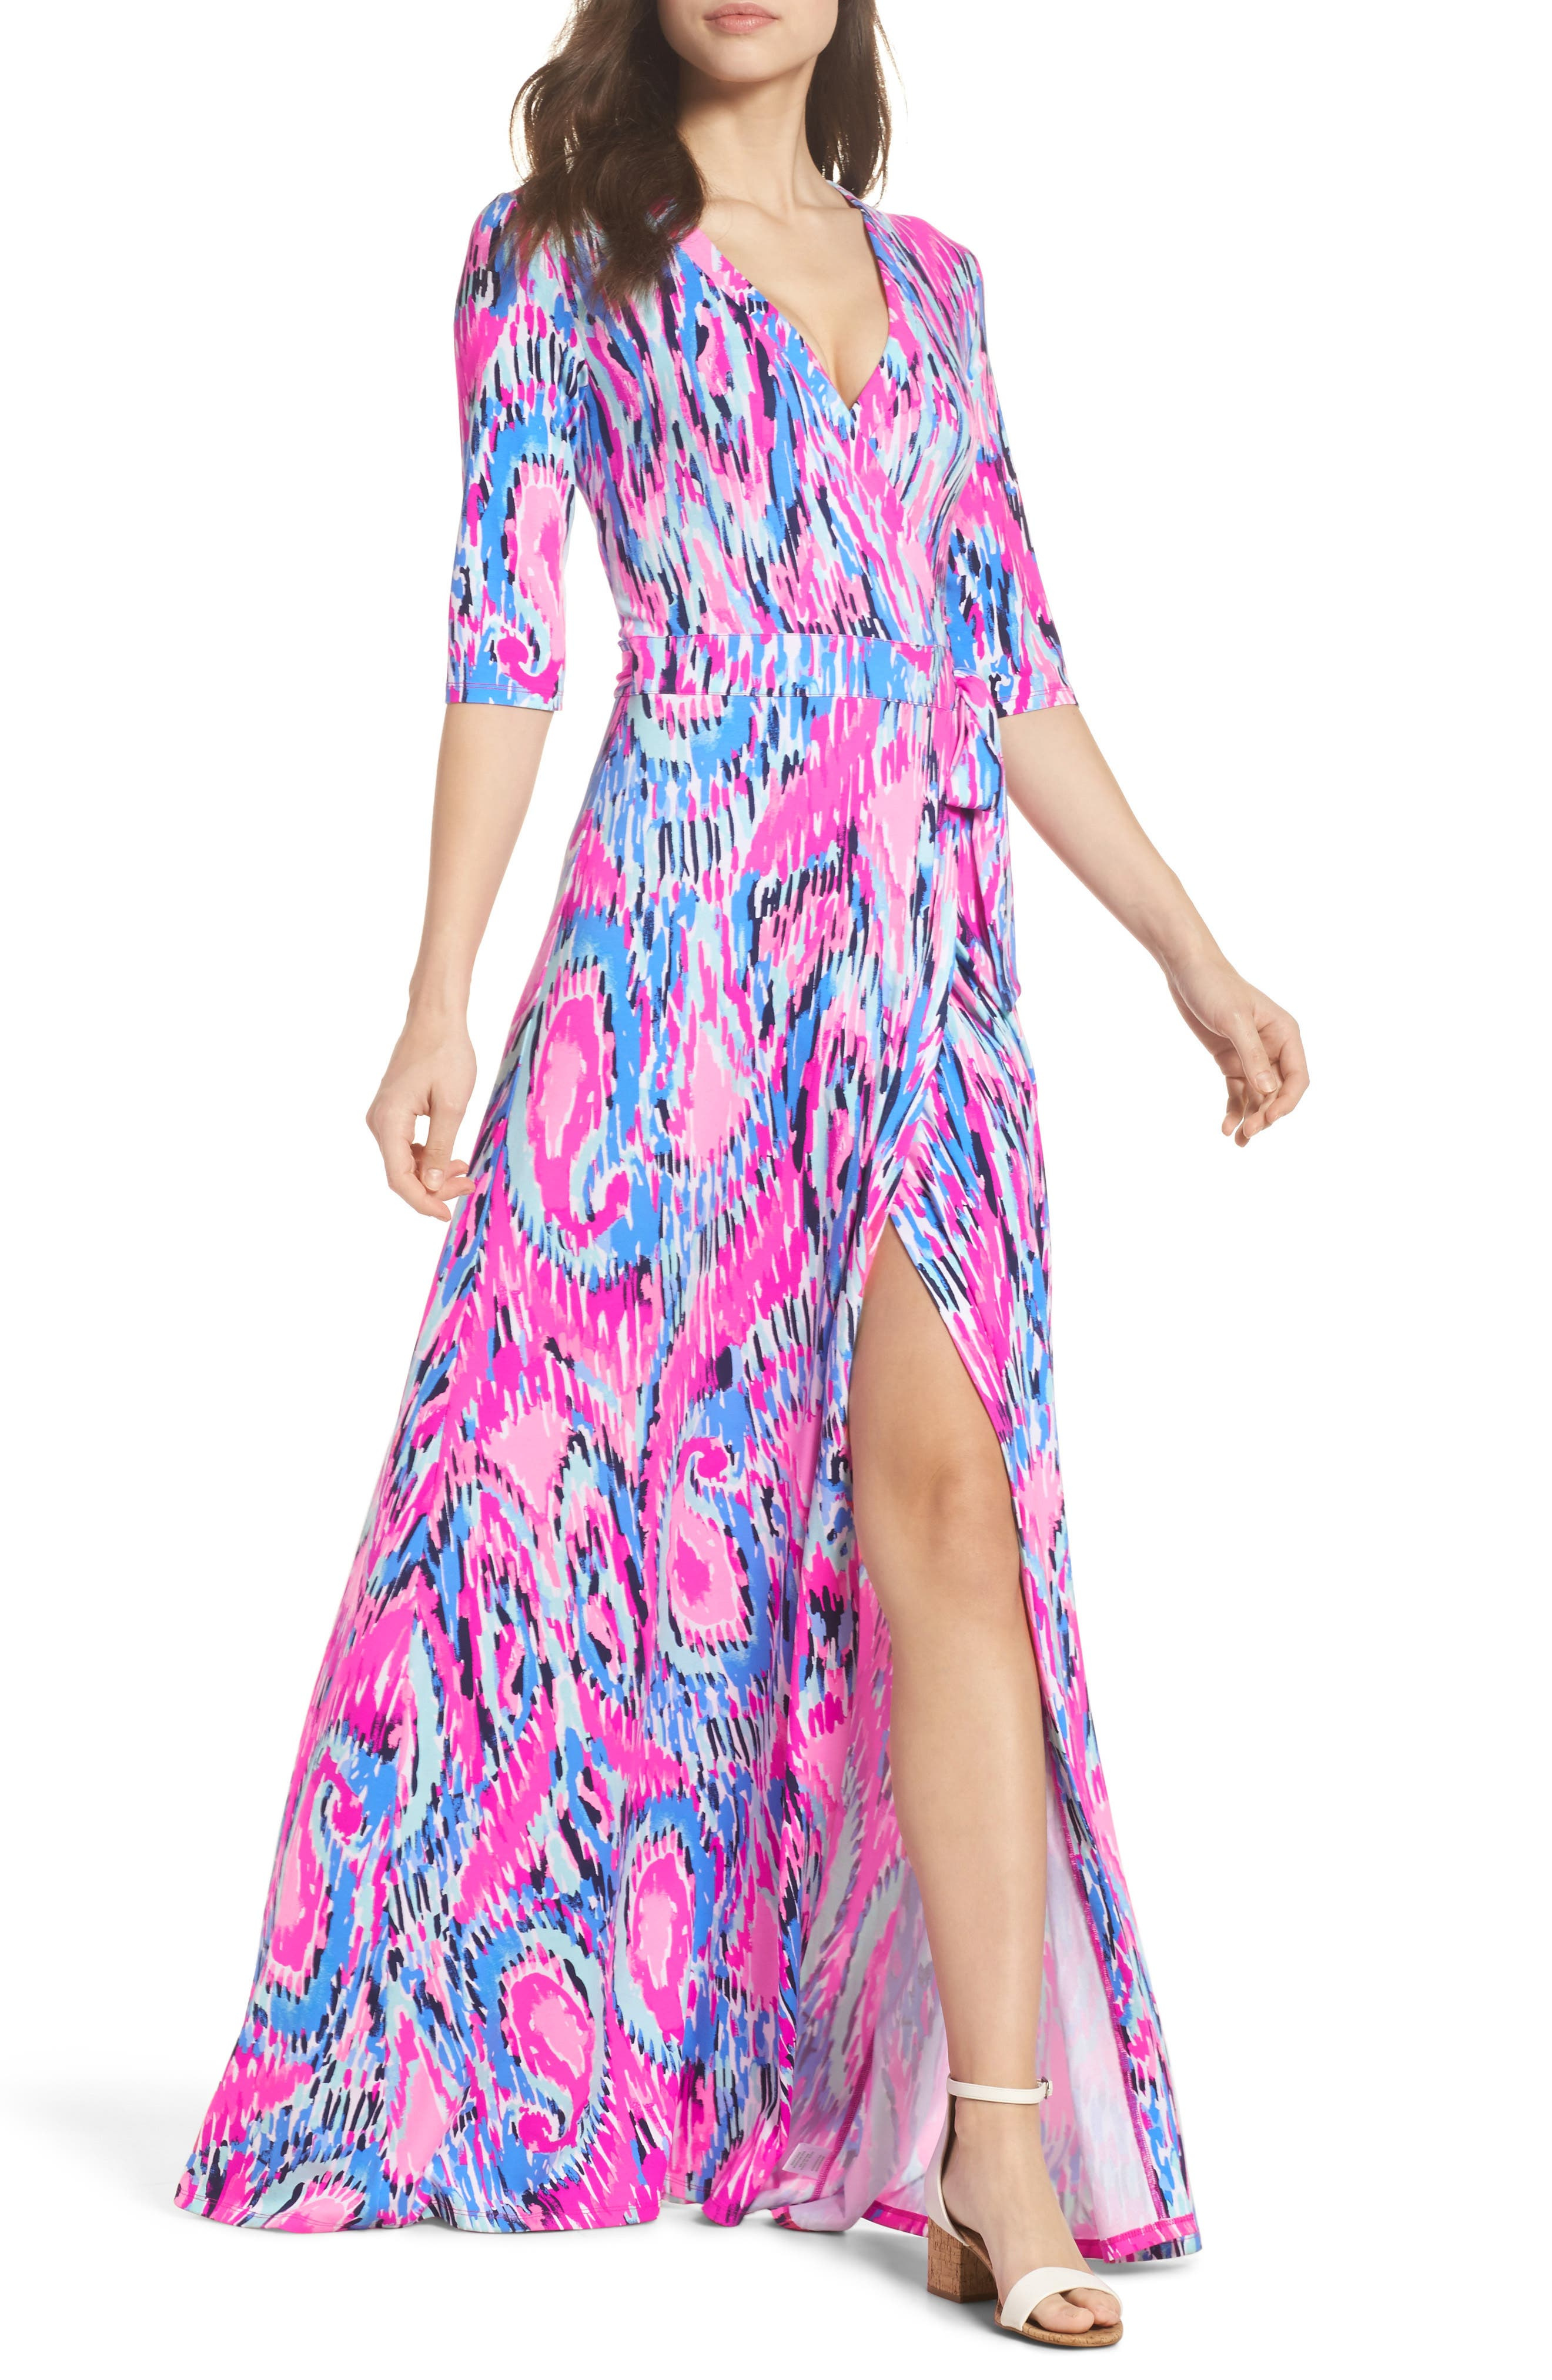 Marvista Wrap Maxi Dress,                             Main thumbnail 1, color,                             650